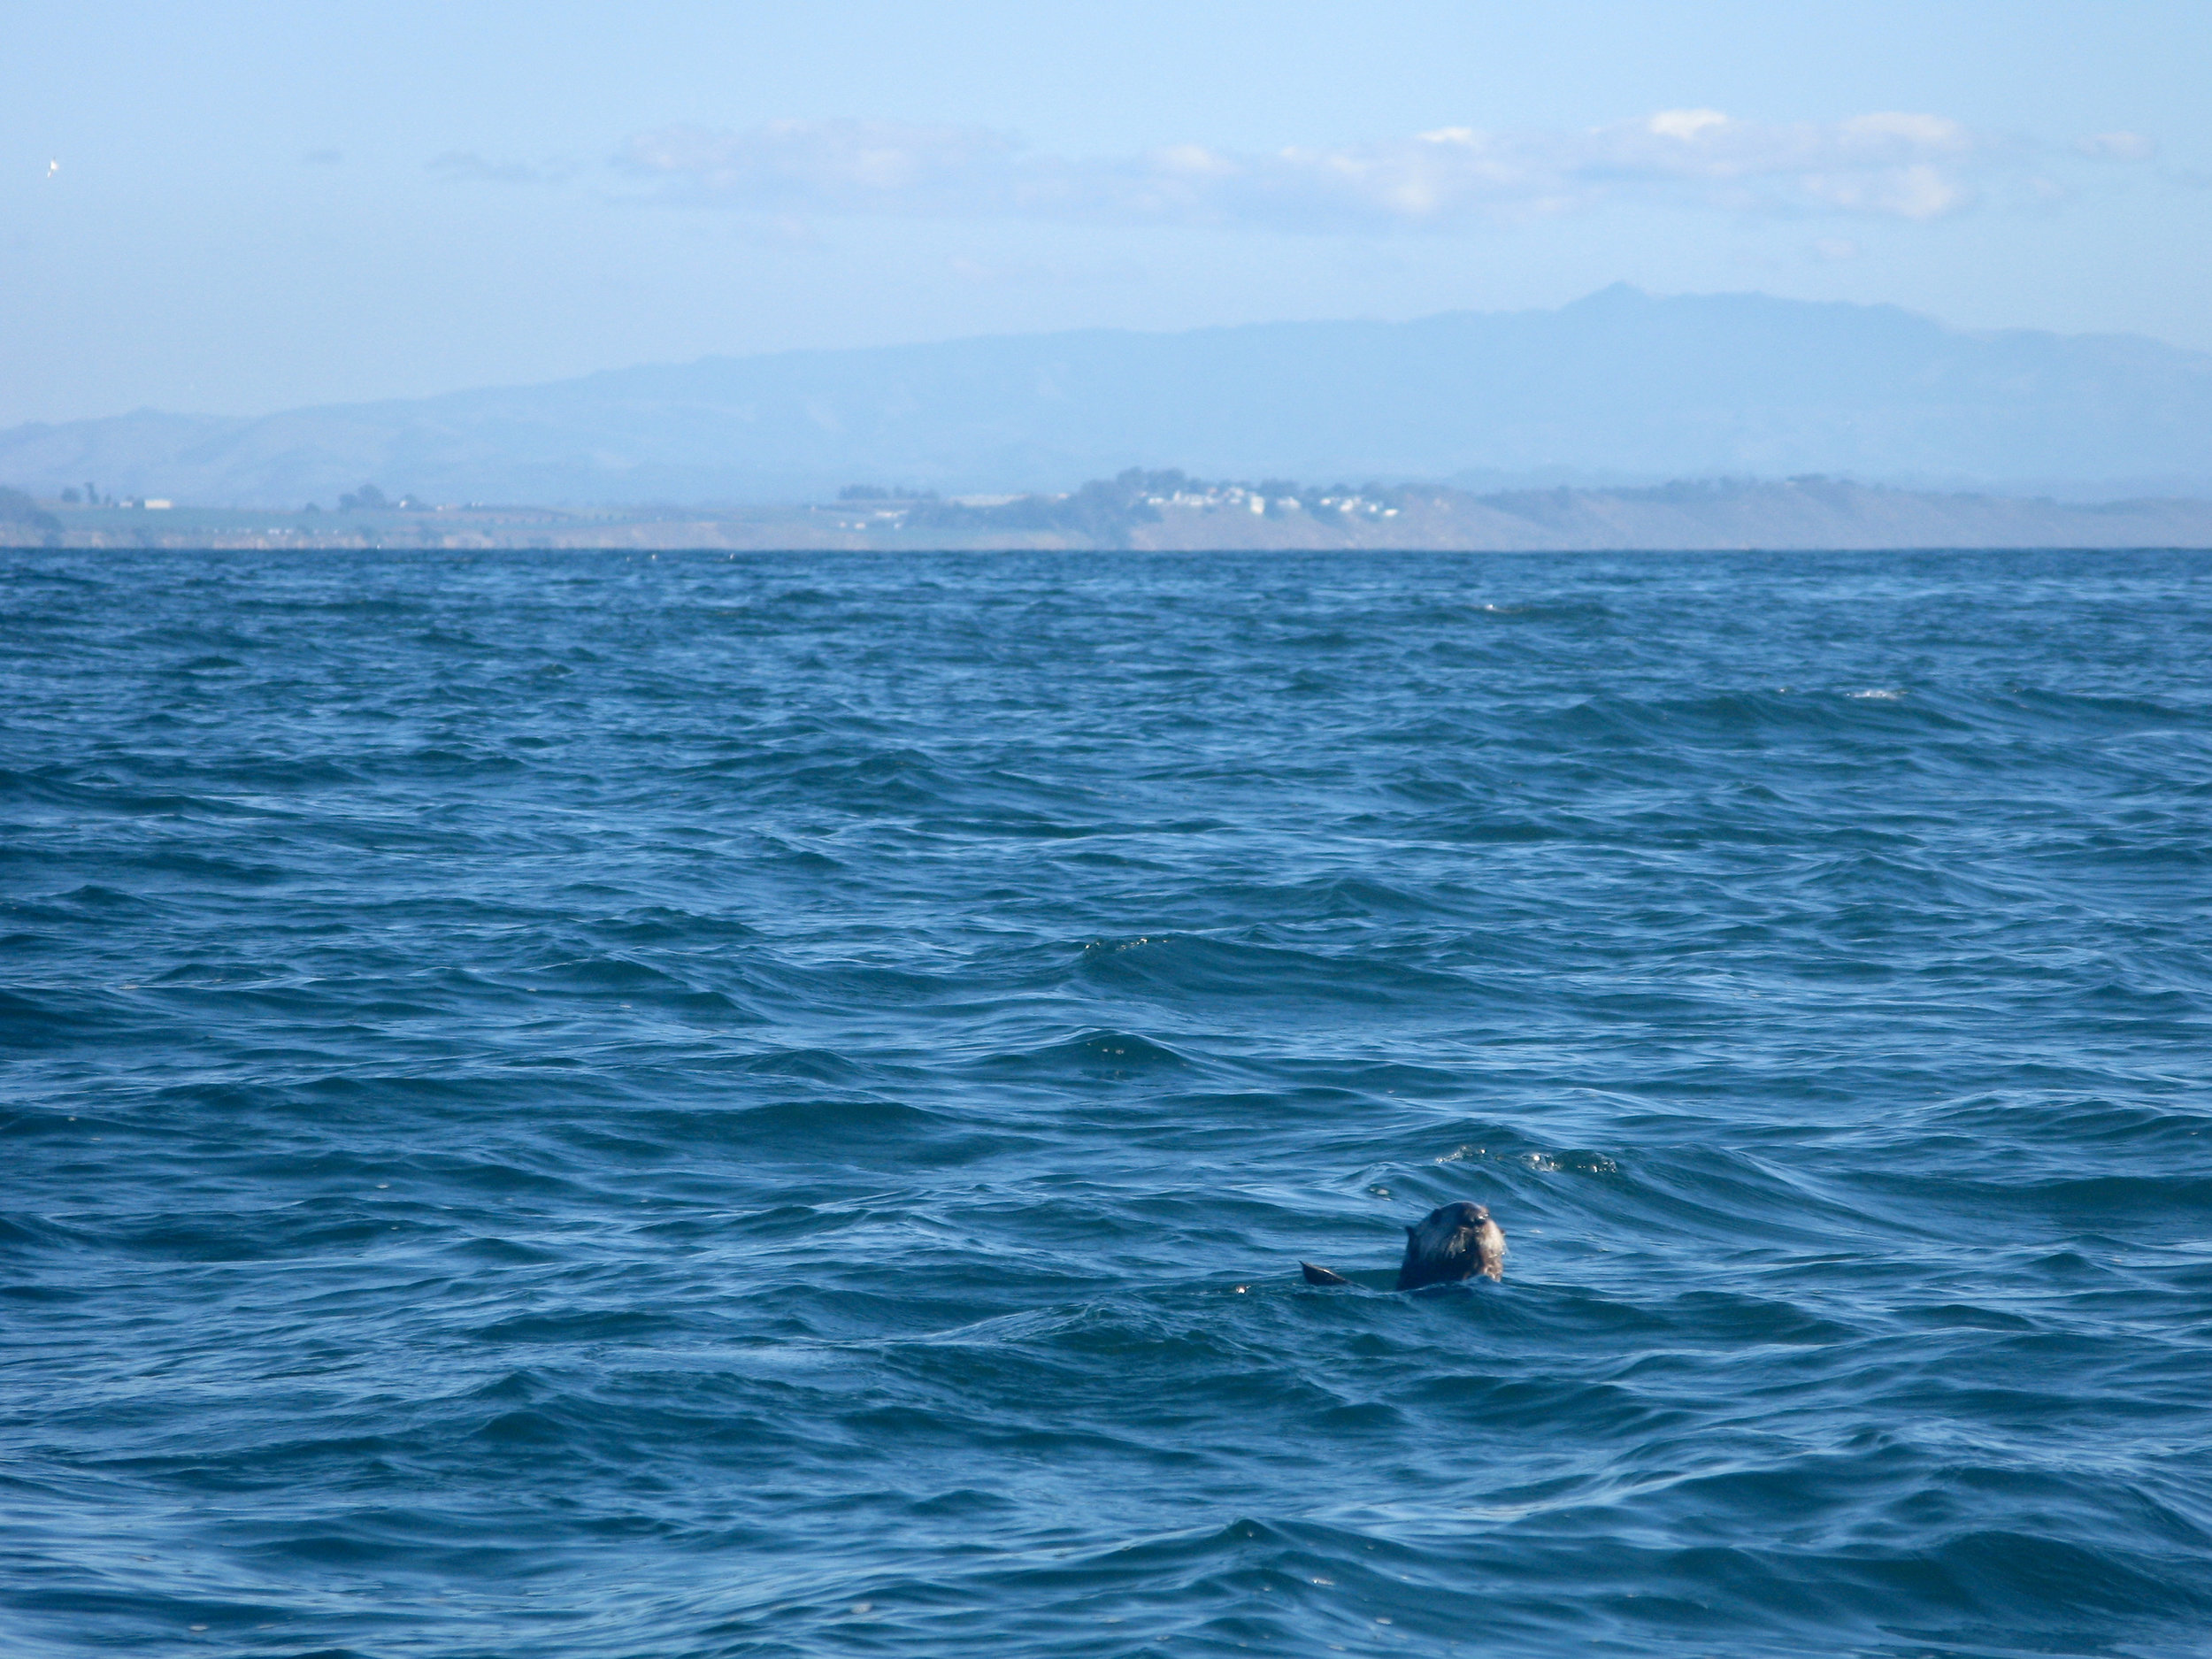 Sea Otter Floats Along in the Bay